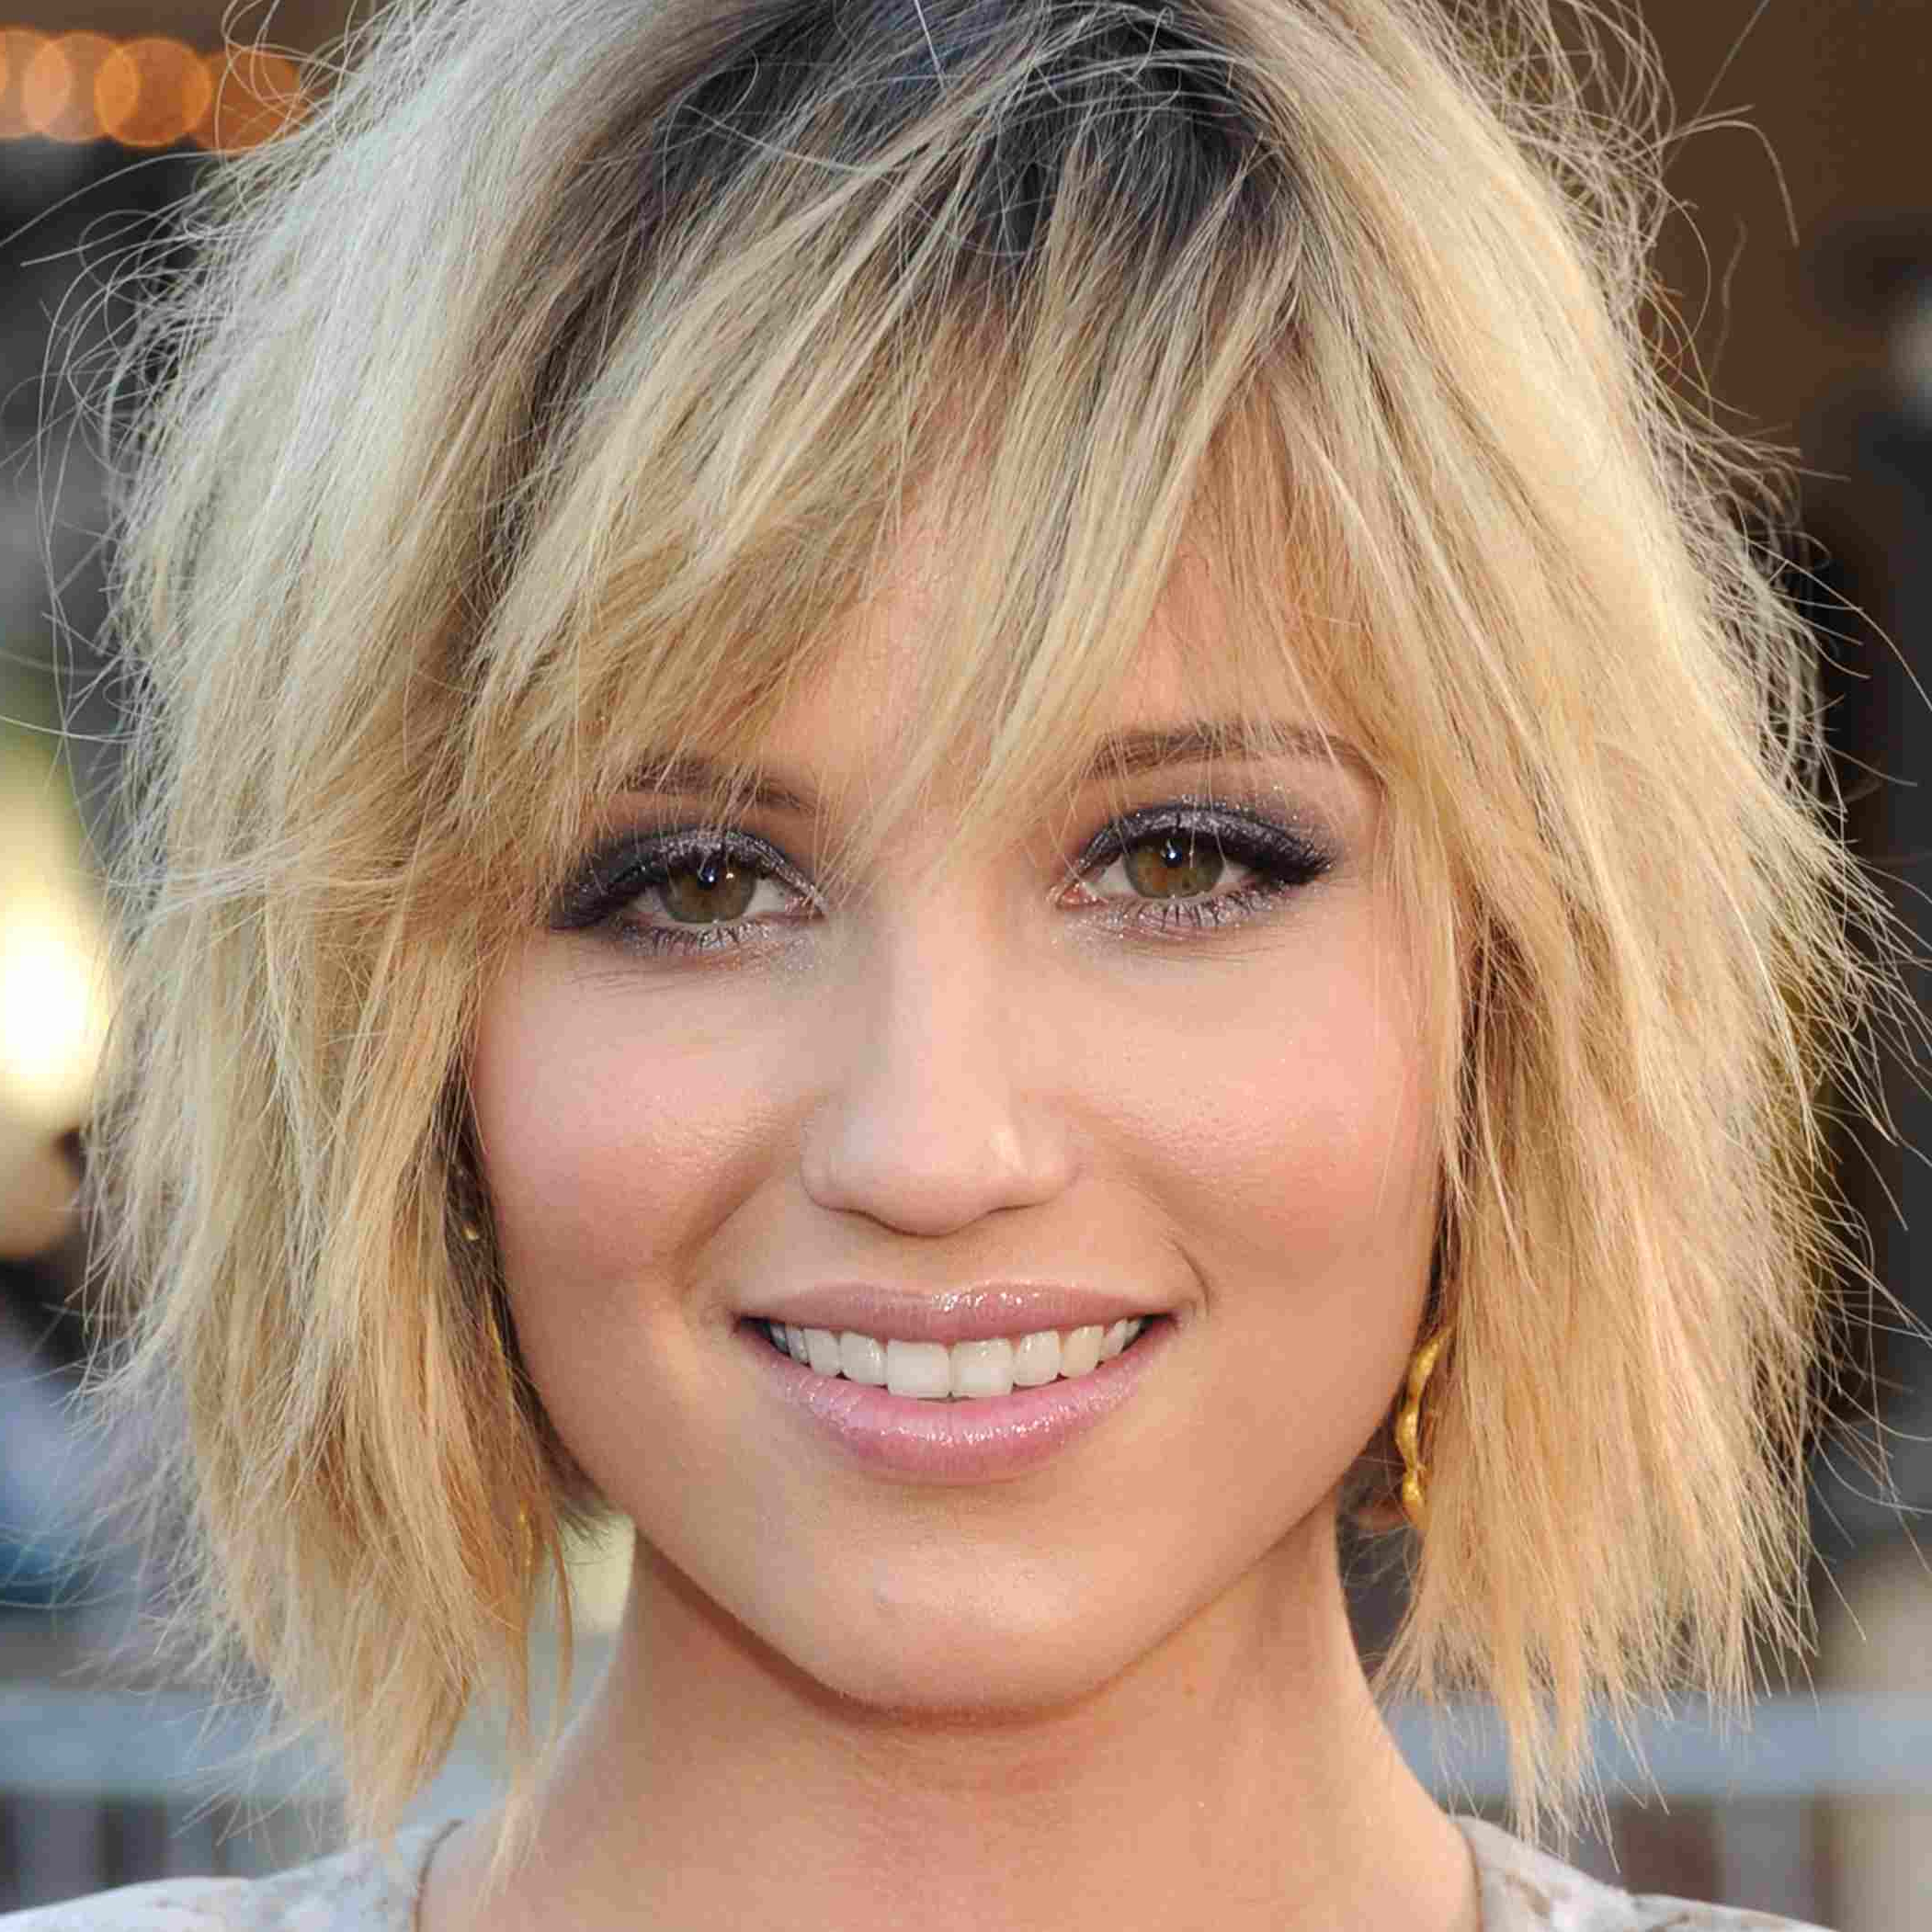 Can't Miss Shag Haircuts, From Short To Long With Recent Short Shag Haircuts With Side Bangs (View 5 of 20)